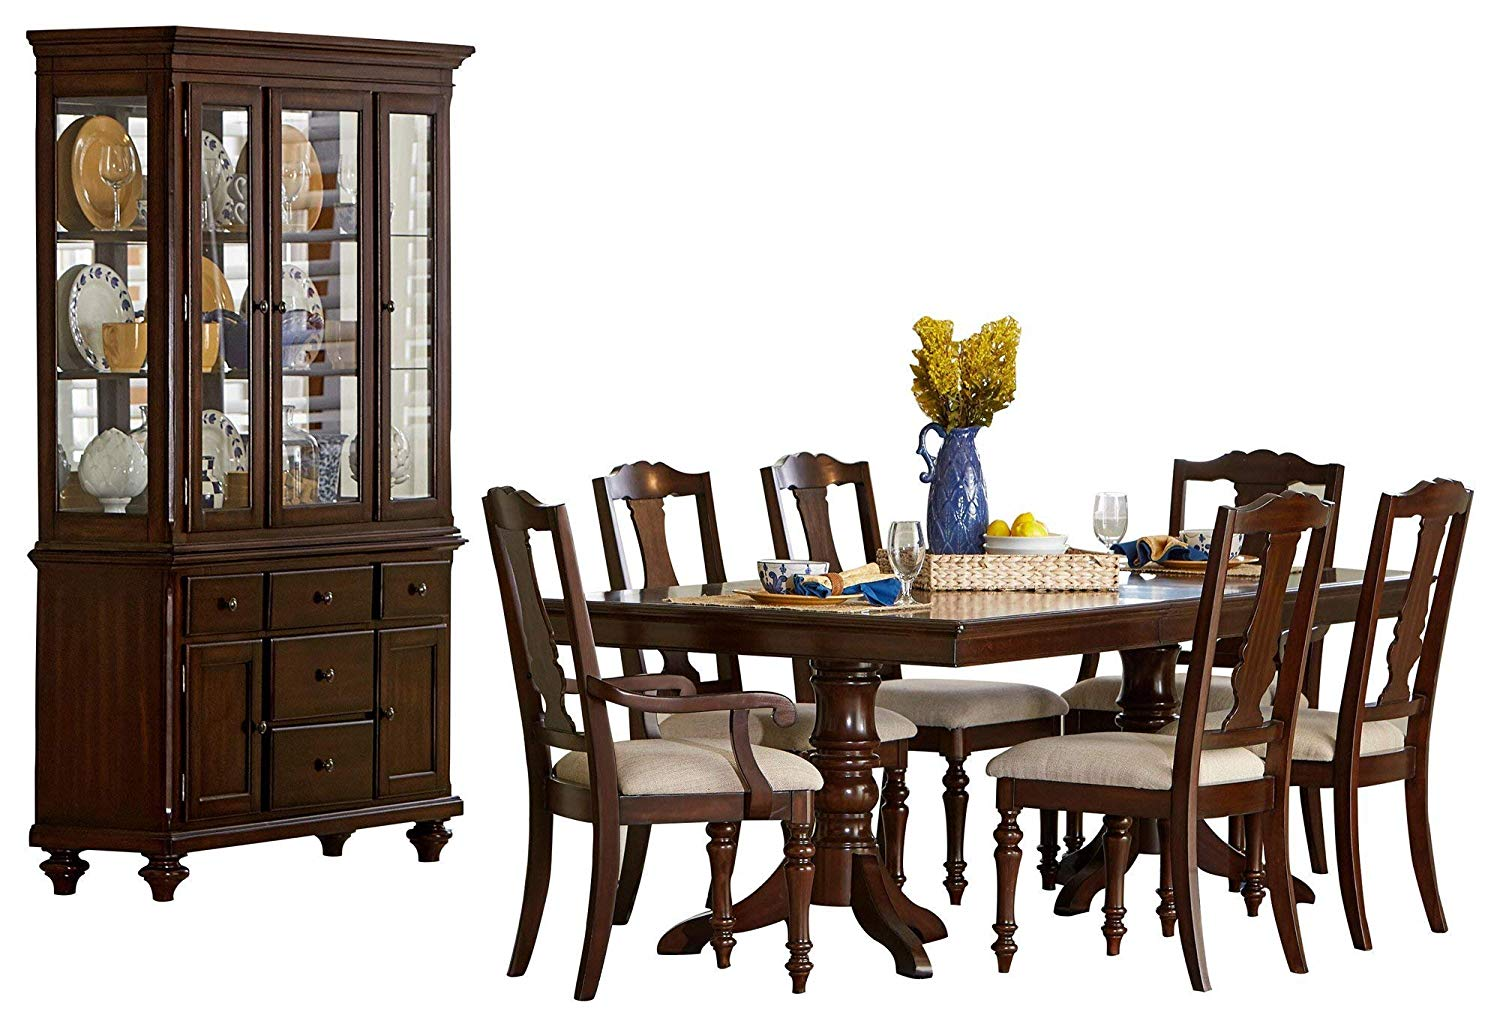 Get Quotations Grandman 8PC Dining Set Double Pedestal Table 4 Side 2 Arm Chair Buffet